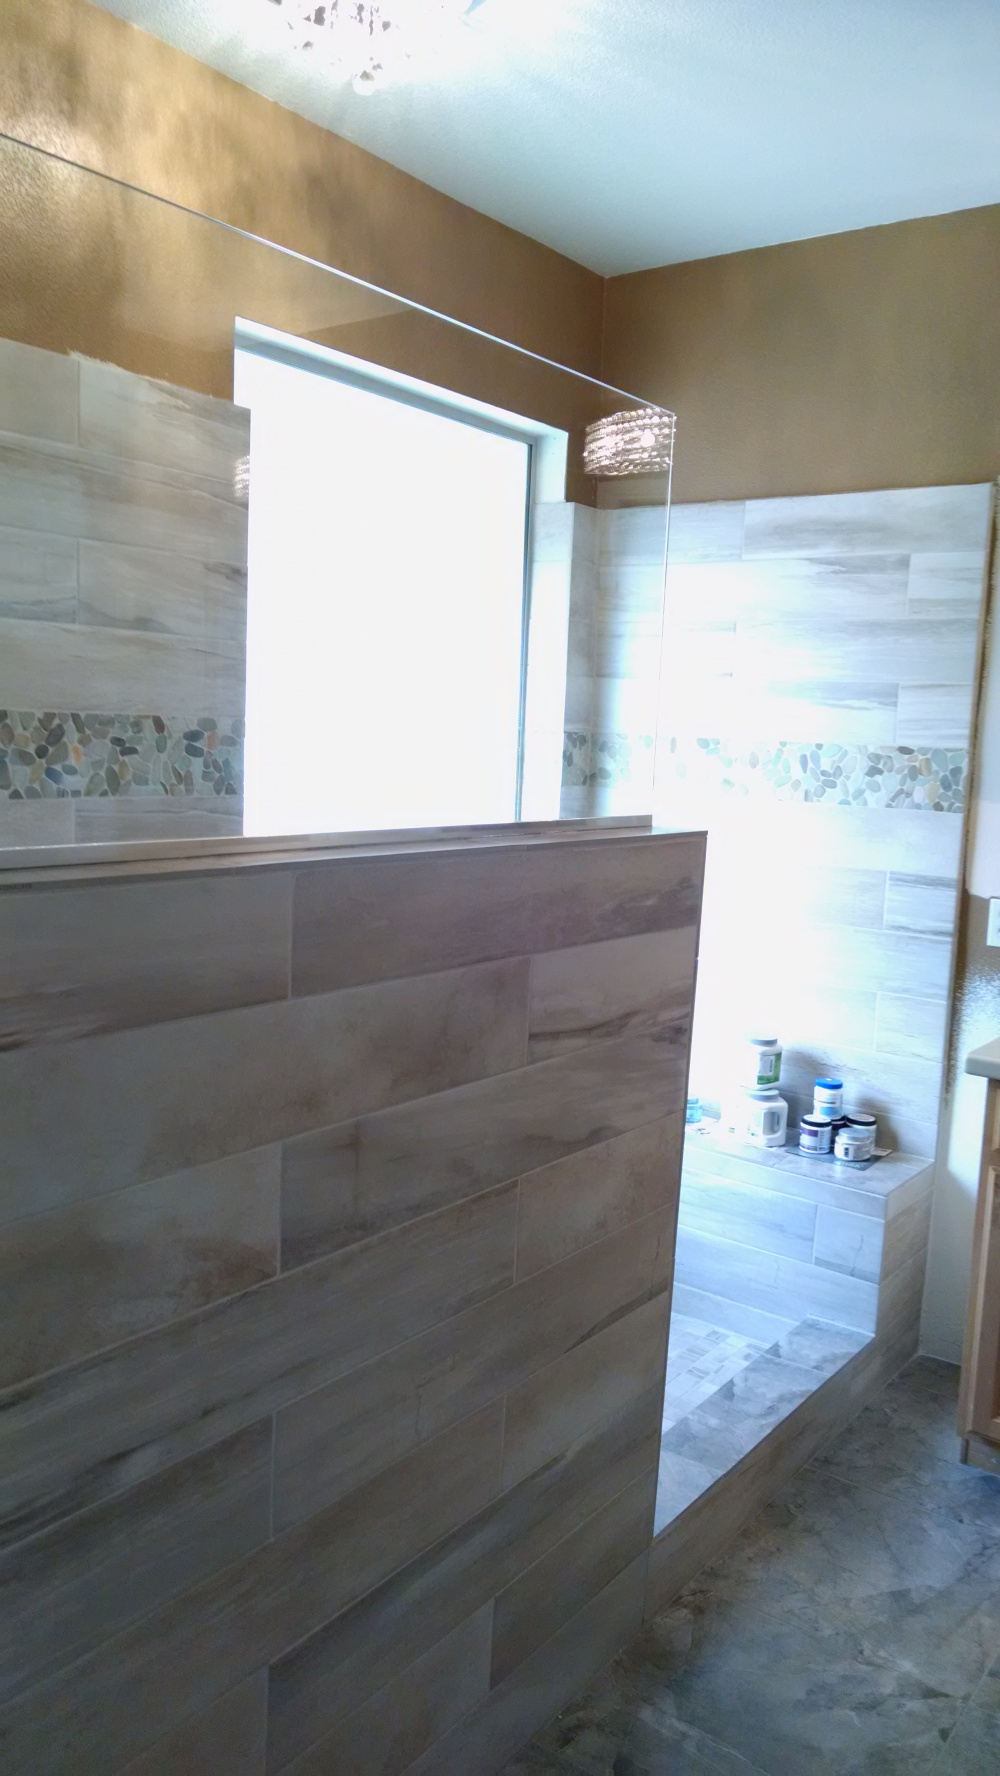 Phoenix Bathroom Remodel Best Home Remodeling Phoenix  Champion Remodeling Llc. Inspiration Design